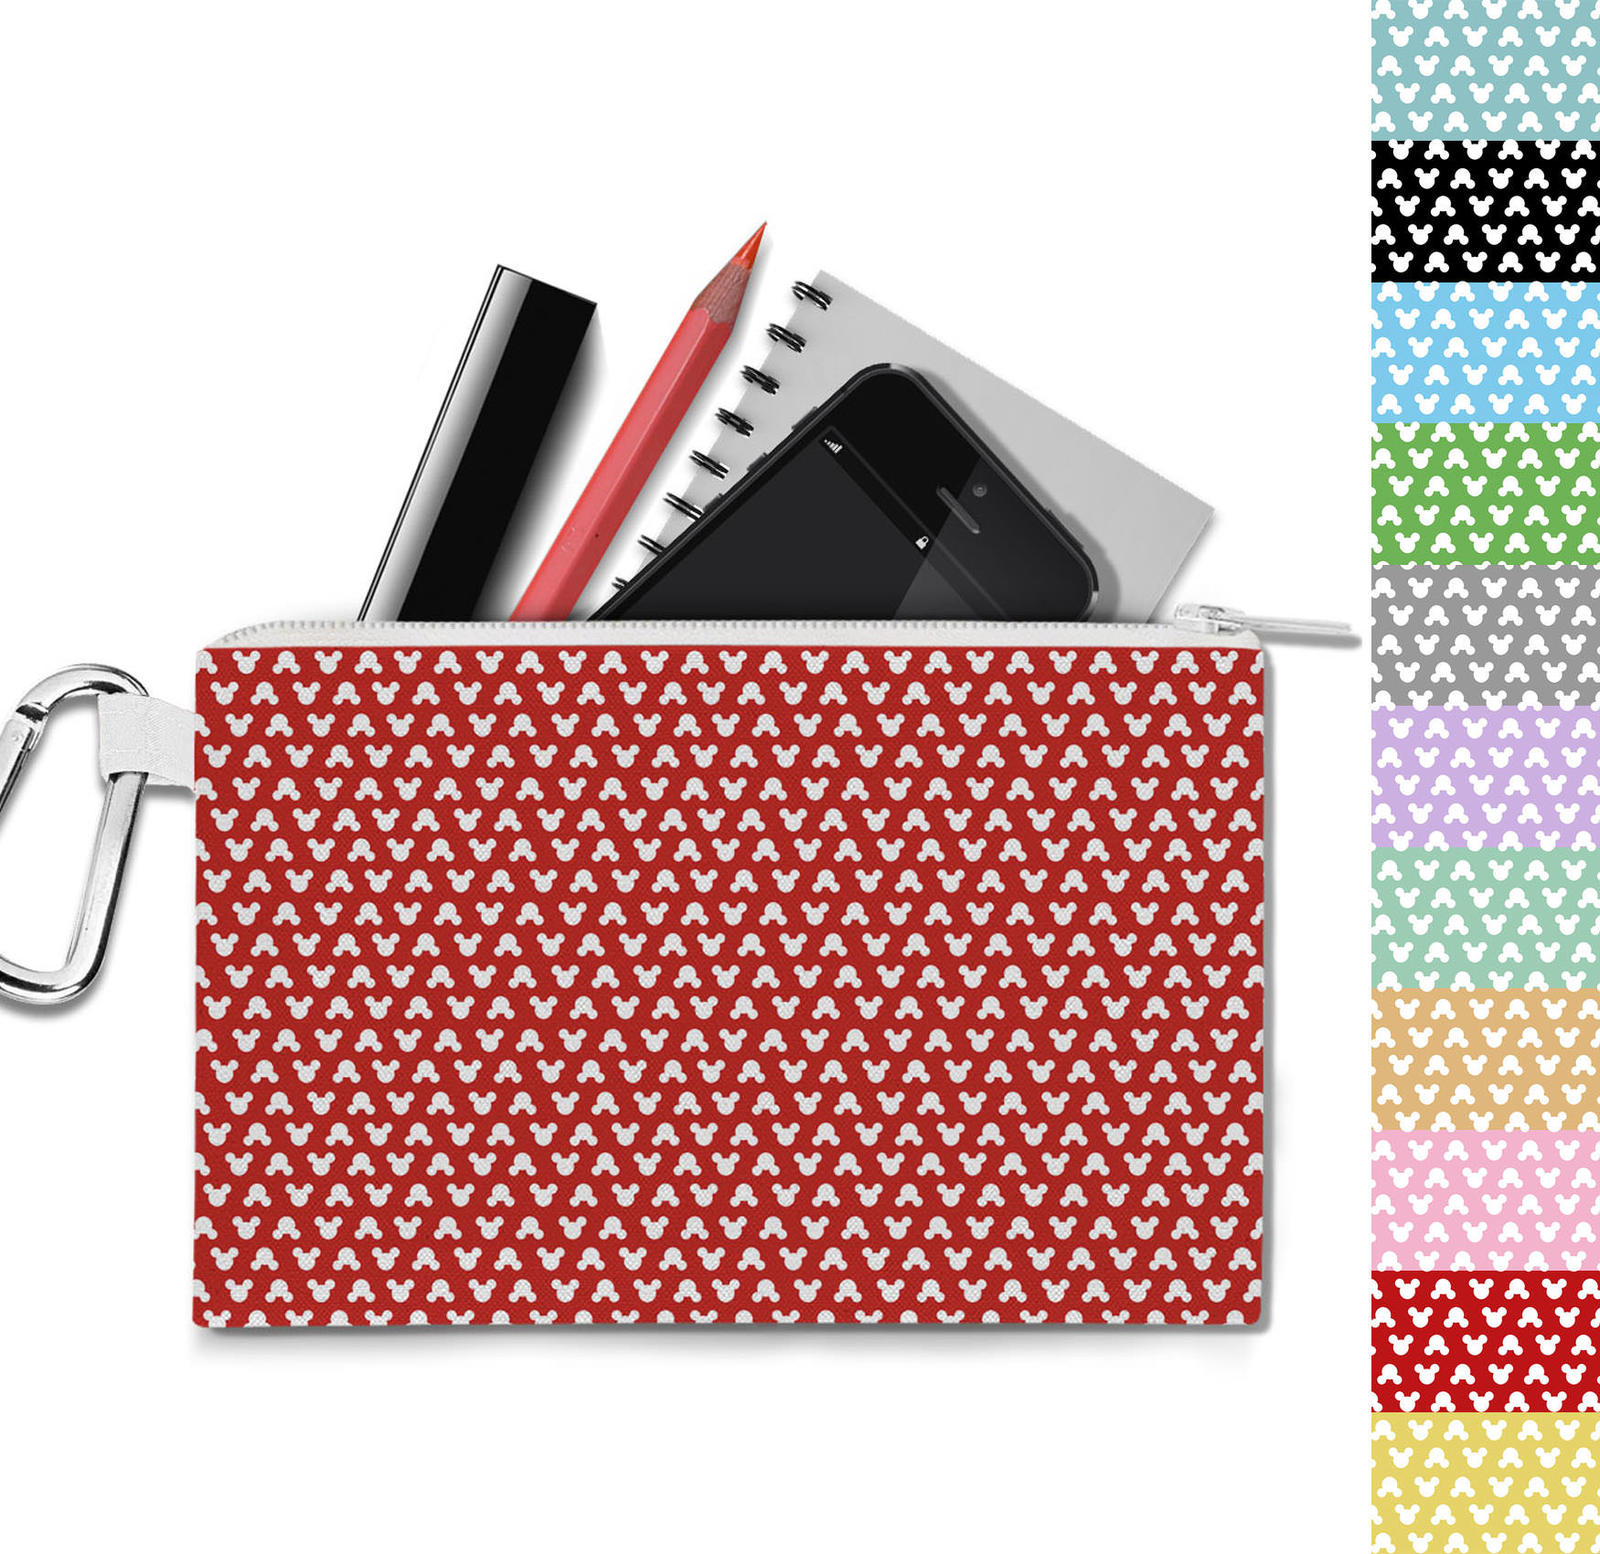 Mouse Ears Polka Dots Canvas Zip Pouch